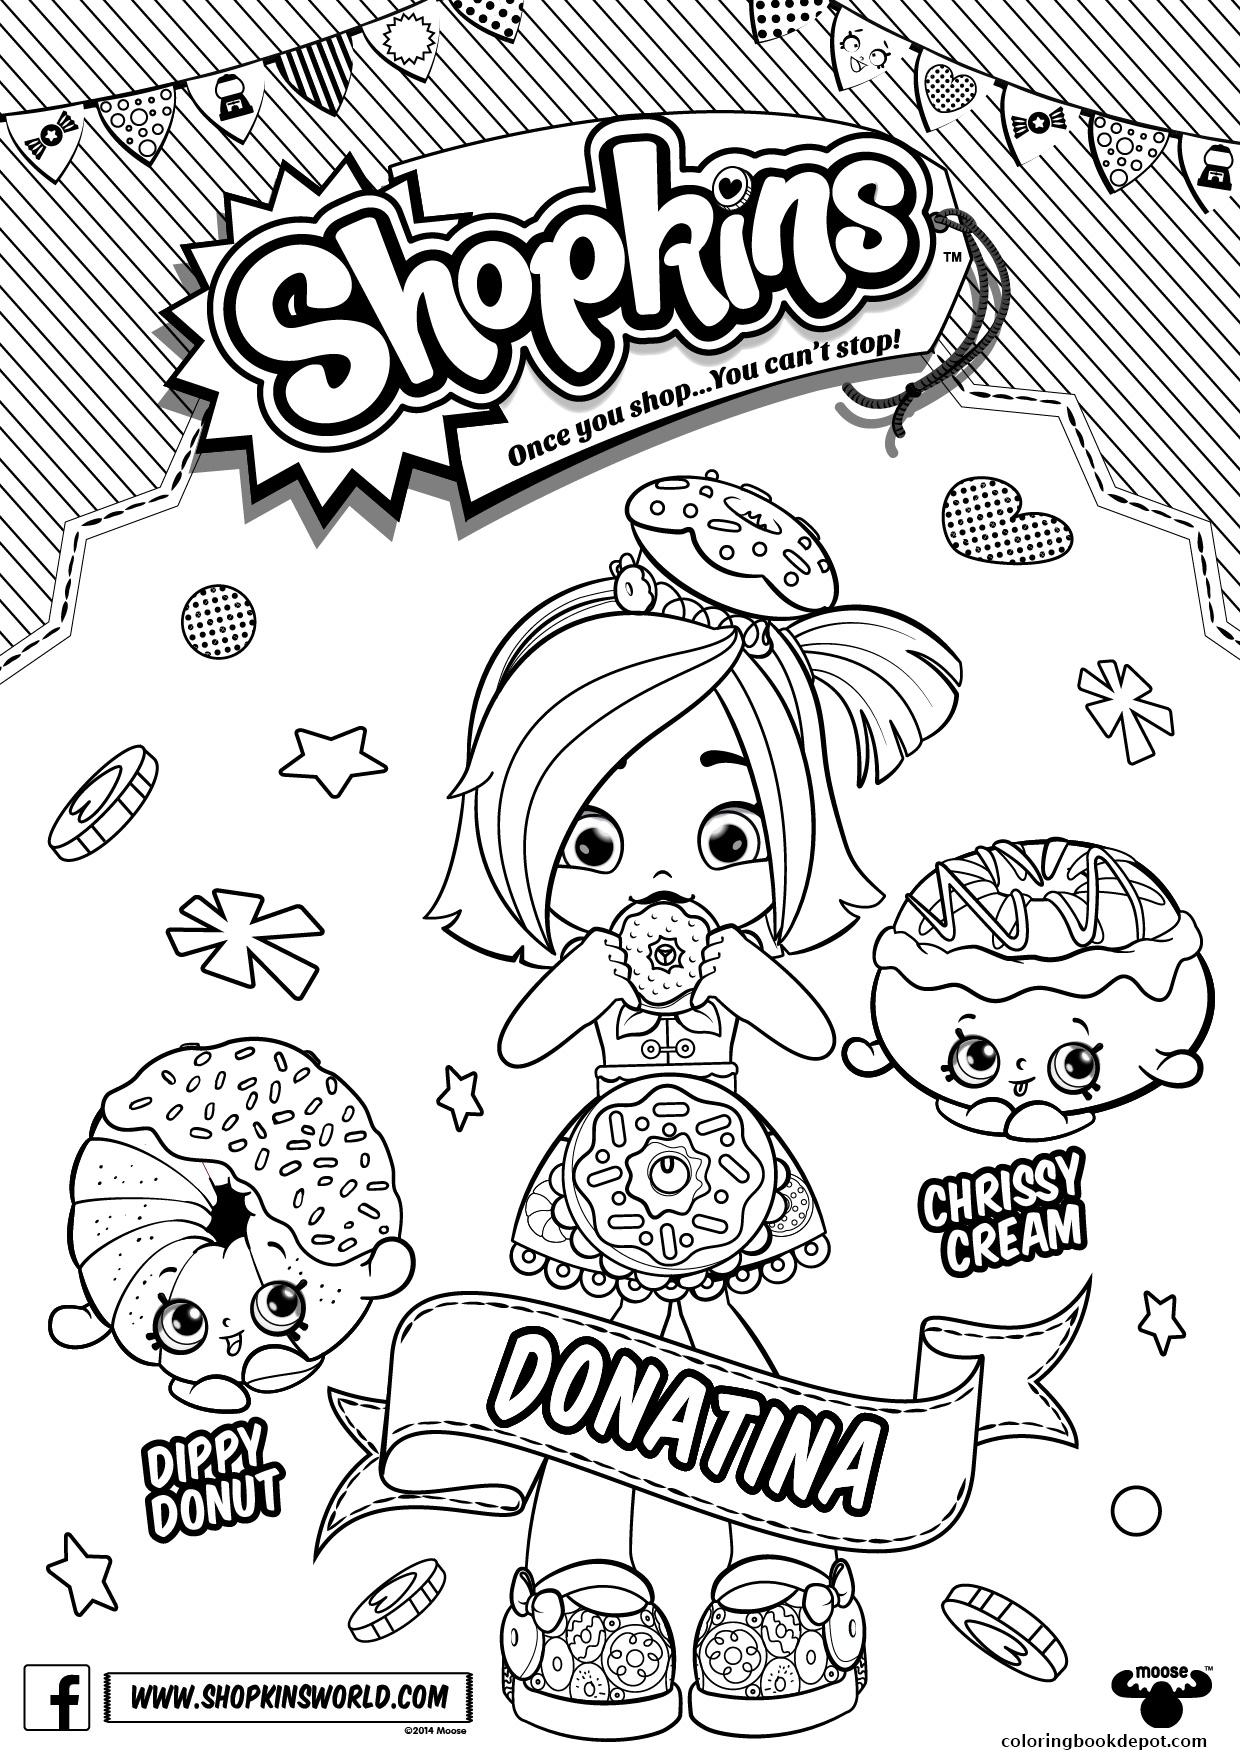 free adult coloring pages to print - shopkins doll chef club colouring page donatina shoppies 167